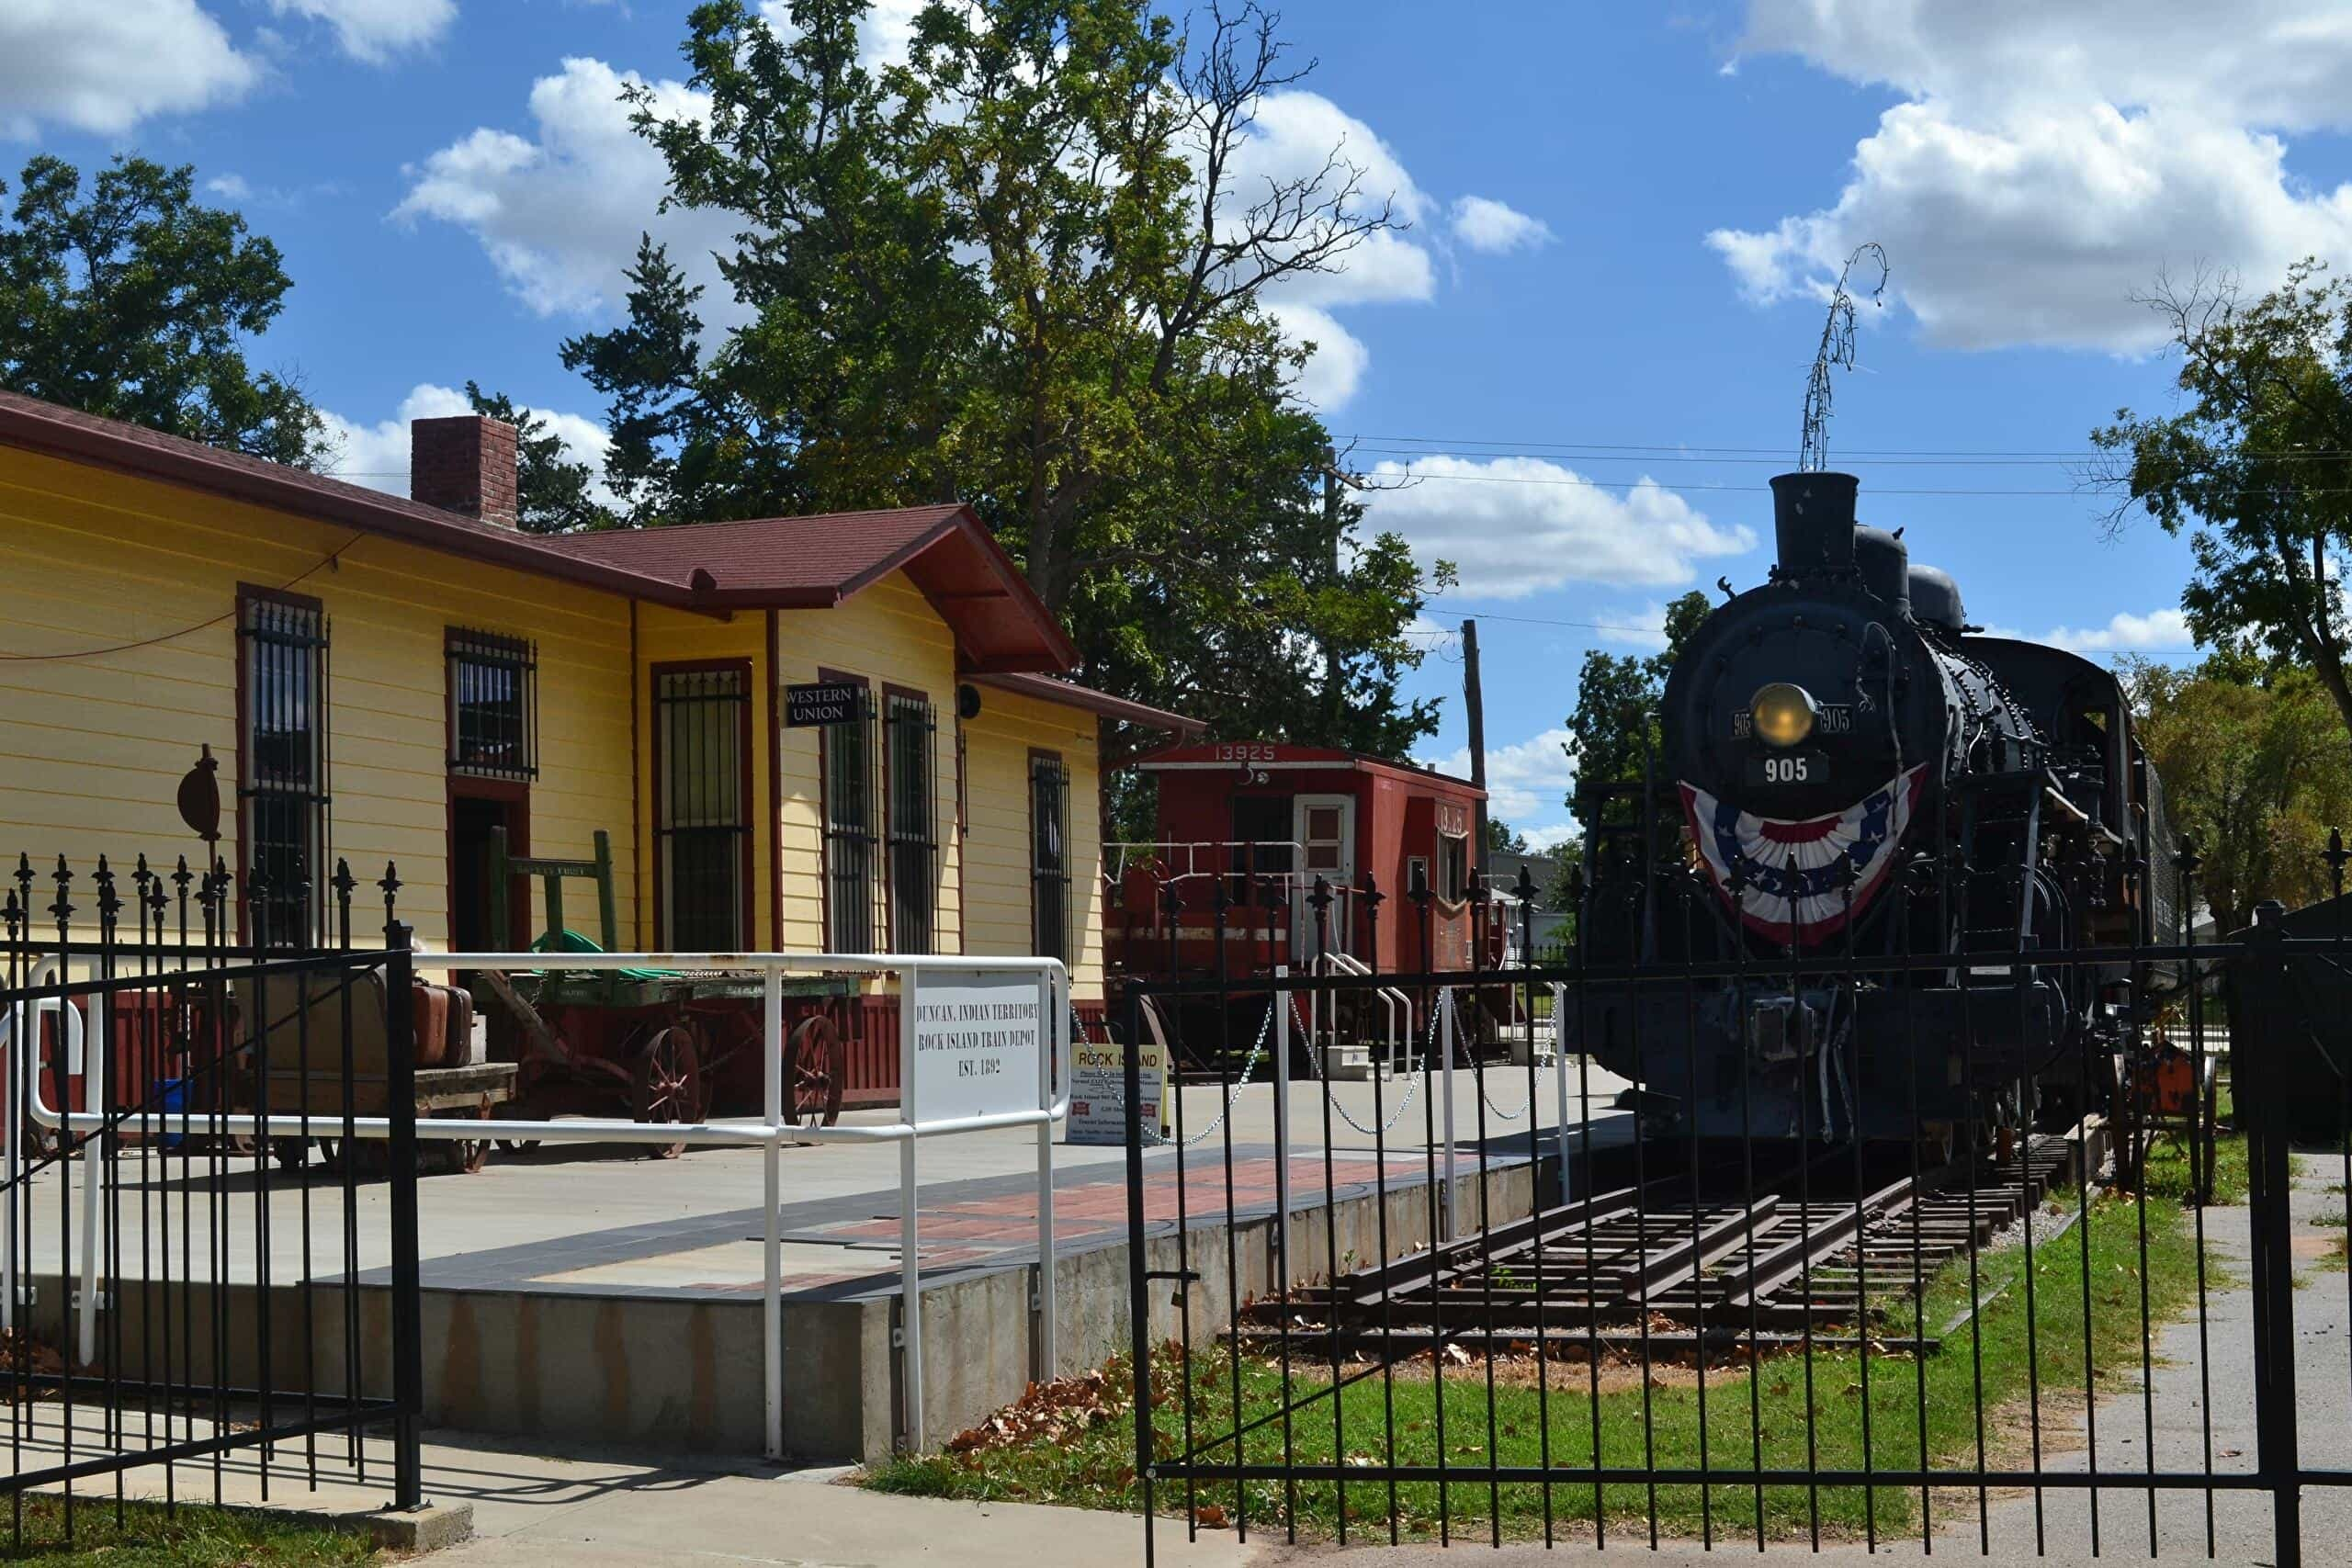 Rock Island 905 Railroad Depot, Museum and Gift Shop - Chickasaw Country